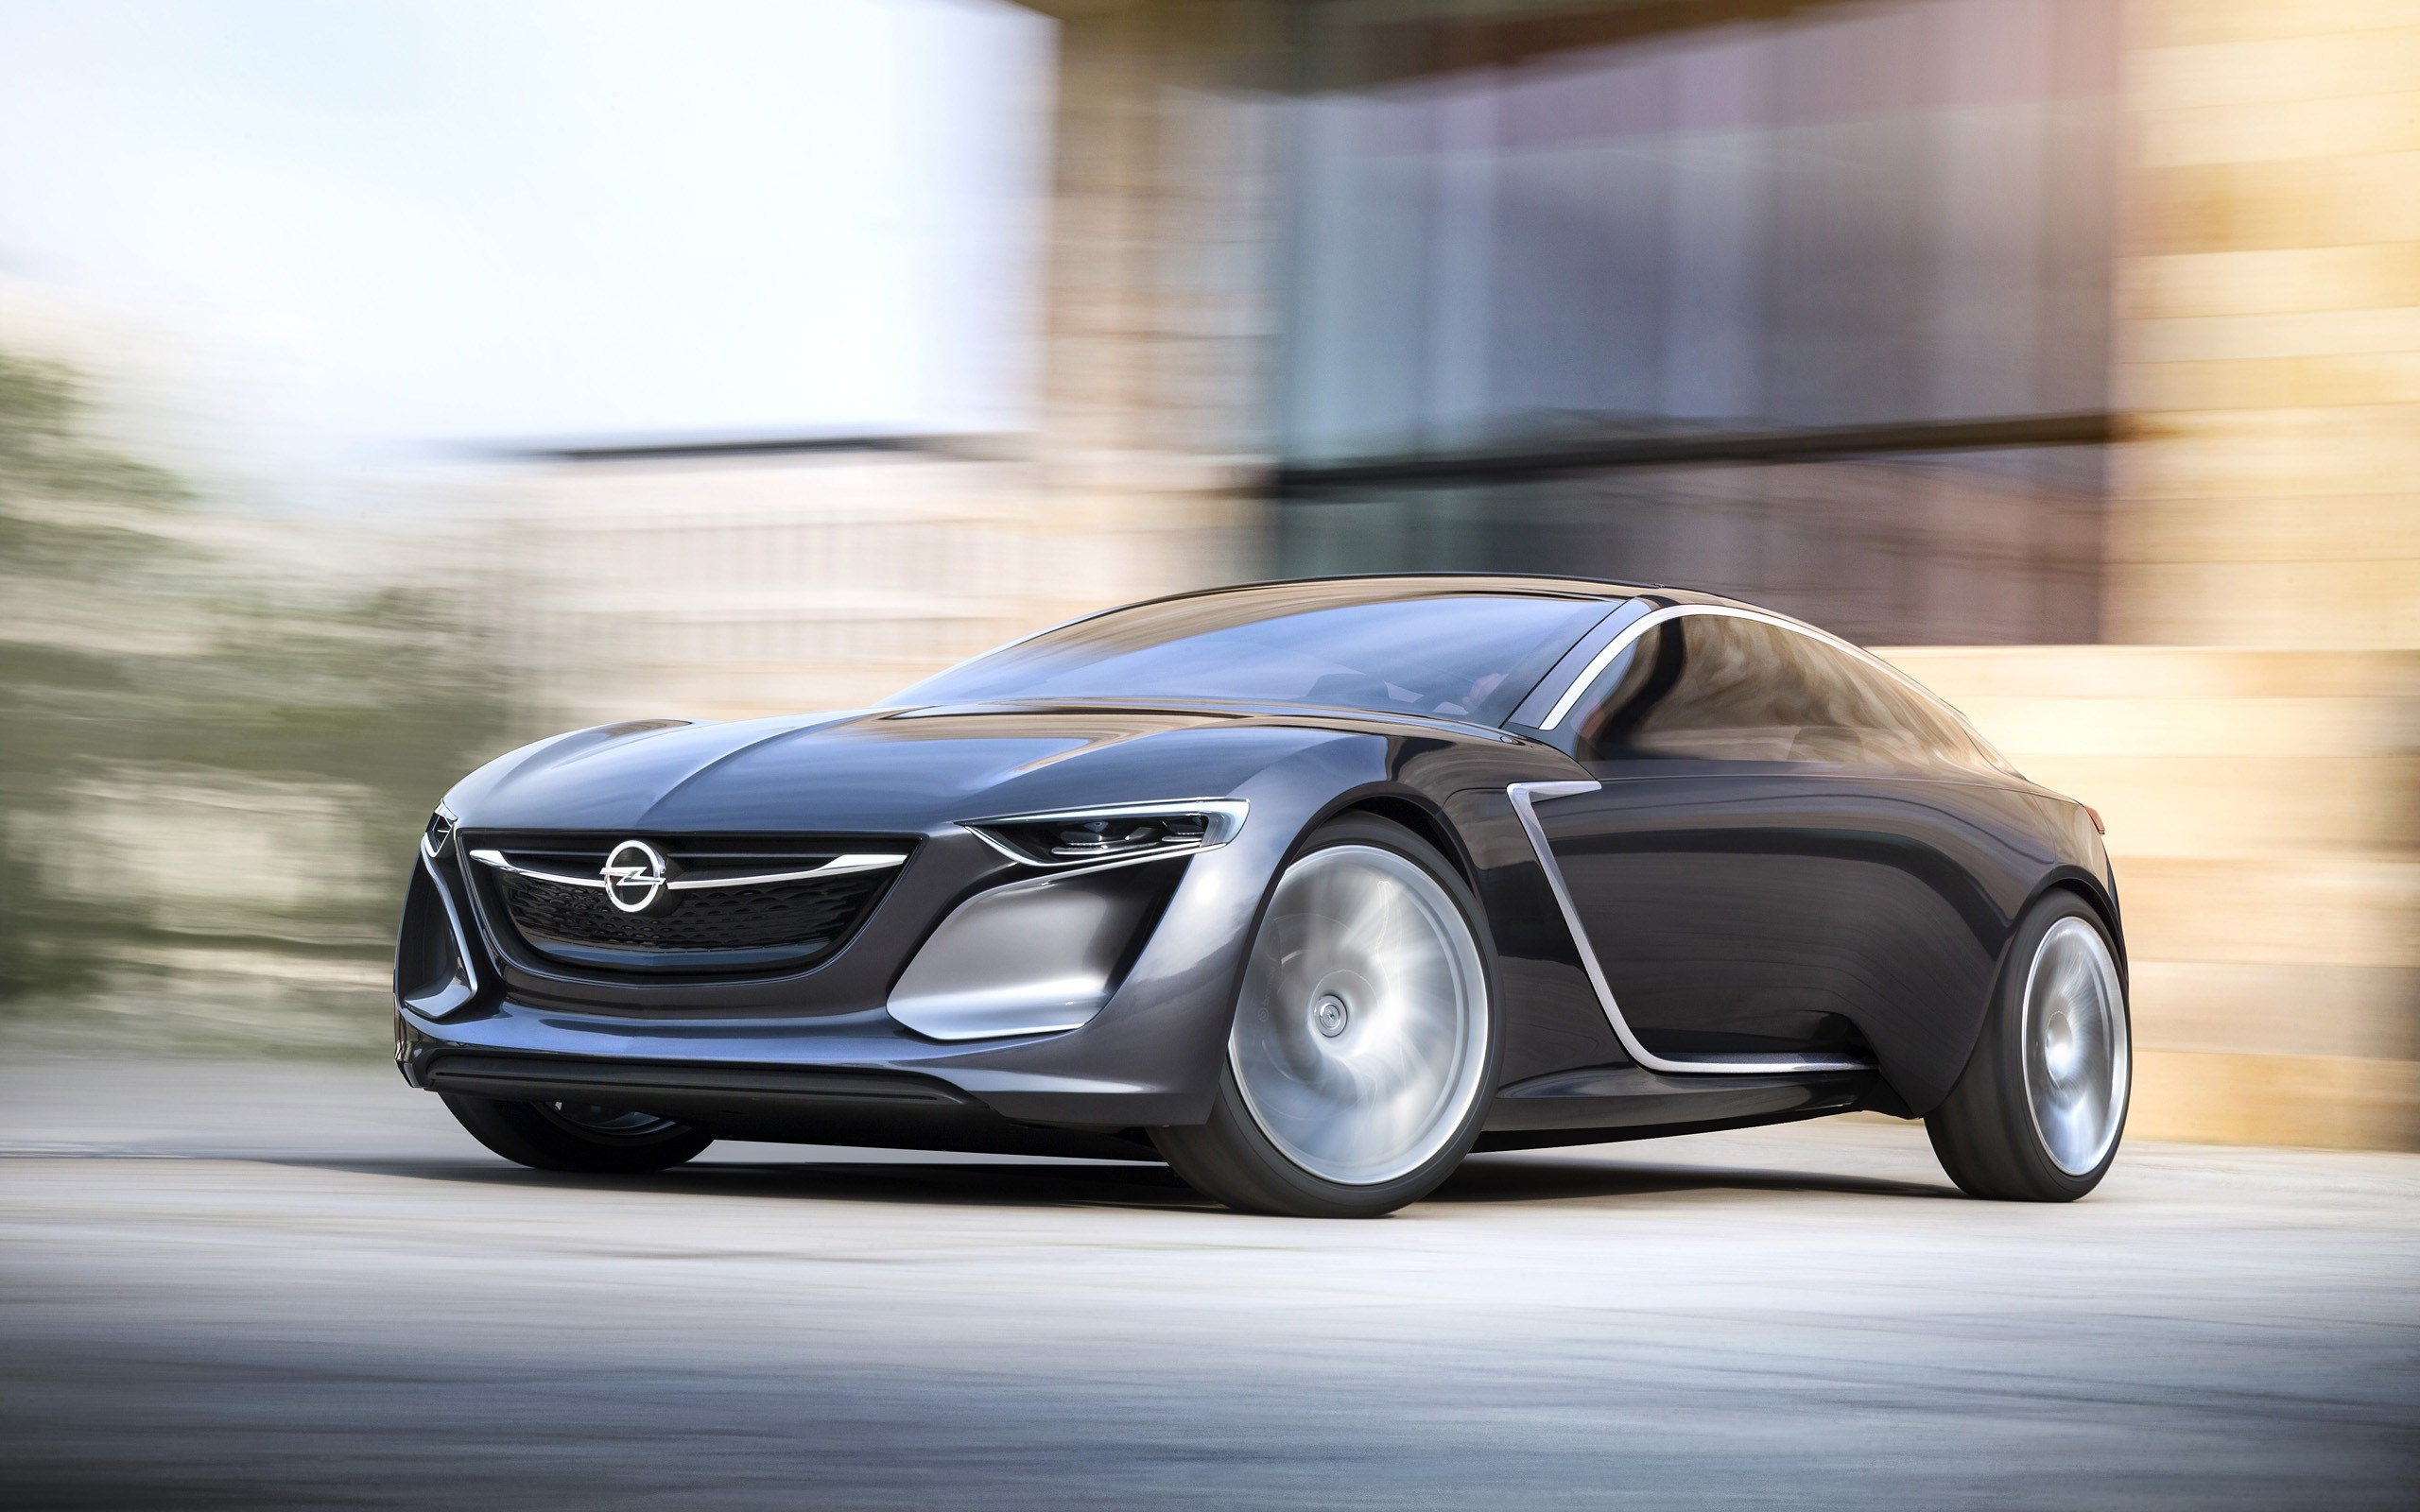 Latest 2013 Opel Monza Concept 2 Wallpaper Hd Car Wallpapers Free Download